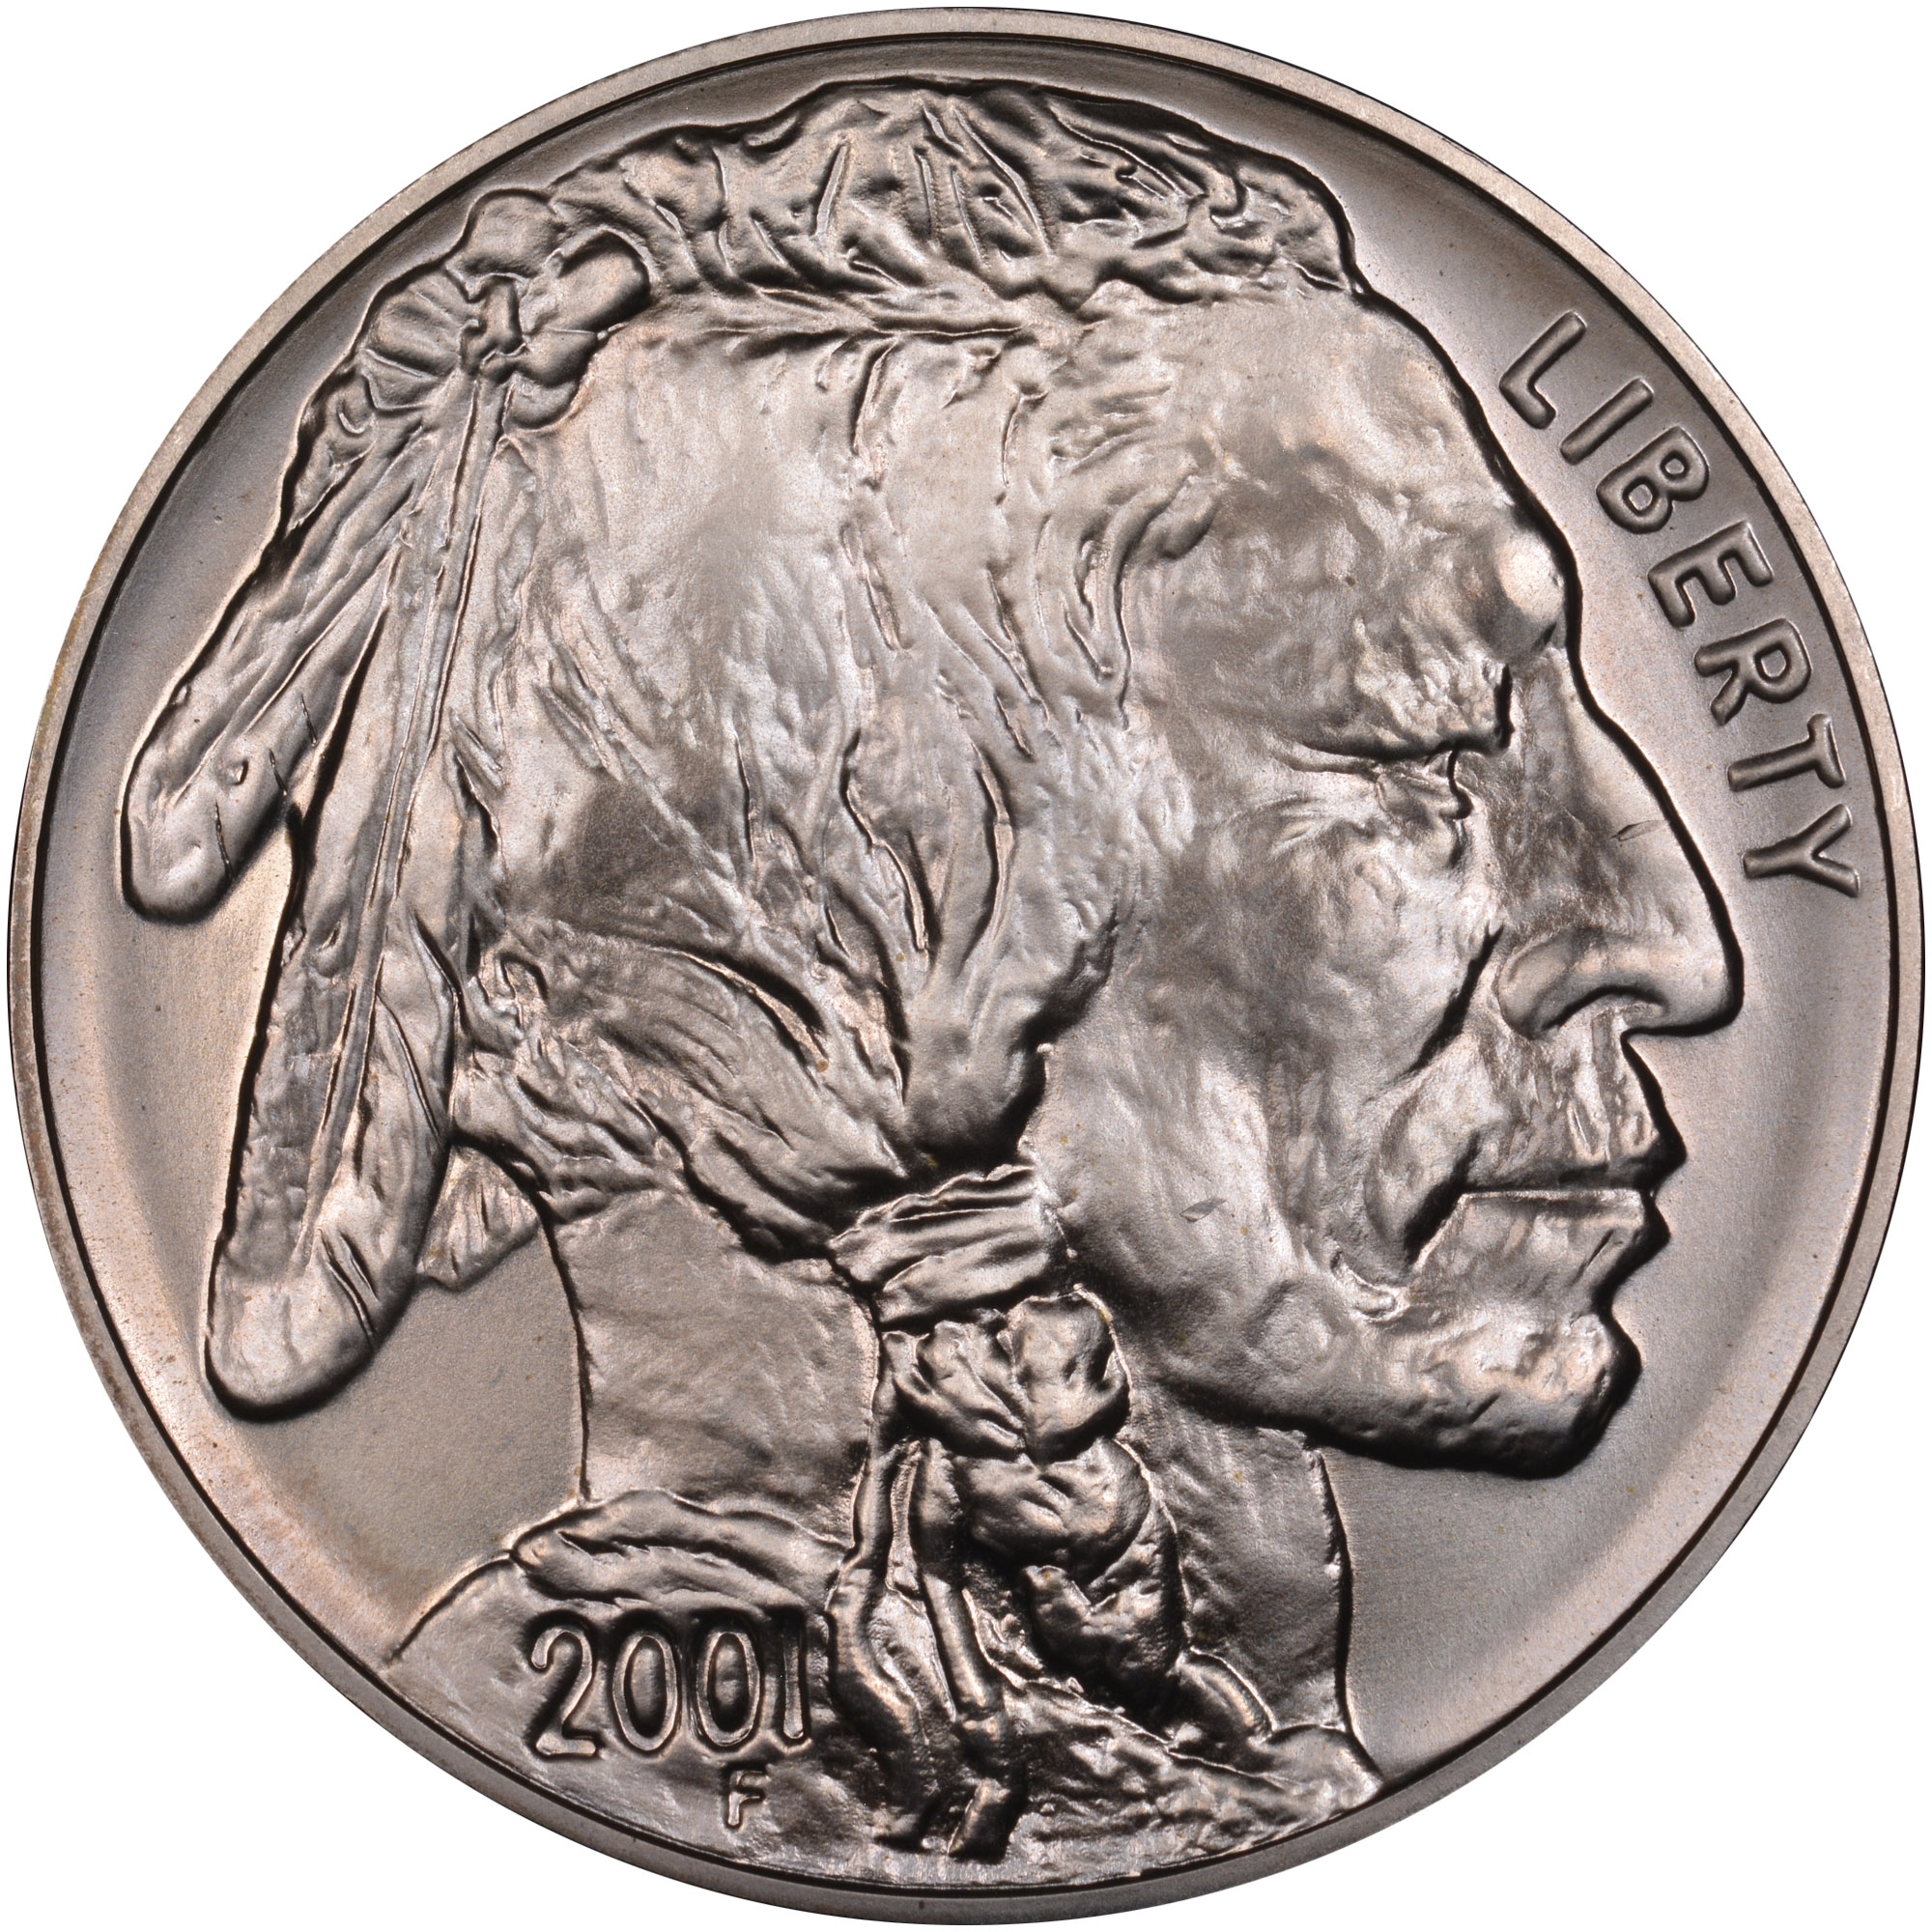 WHITE PERFECT NEAR NGC MS69 2001-D BUFFALO silver $1